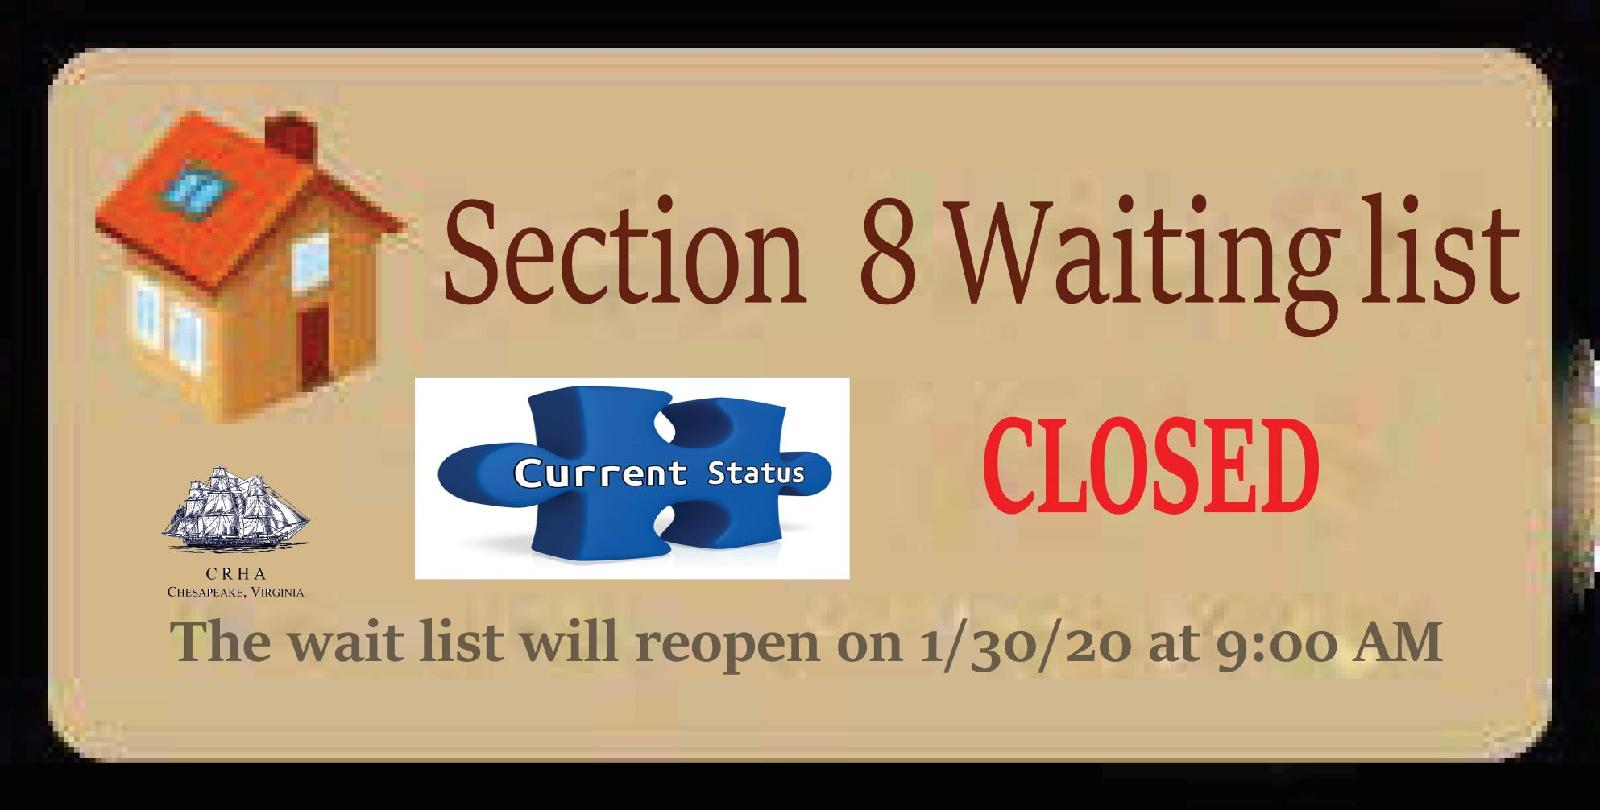 section-8-waiting-list image